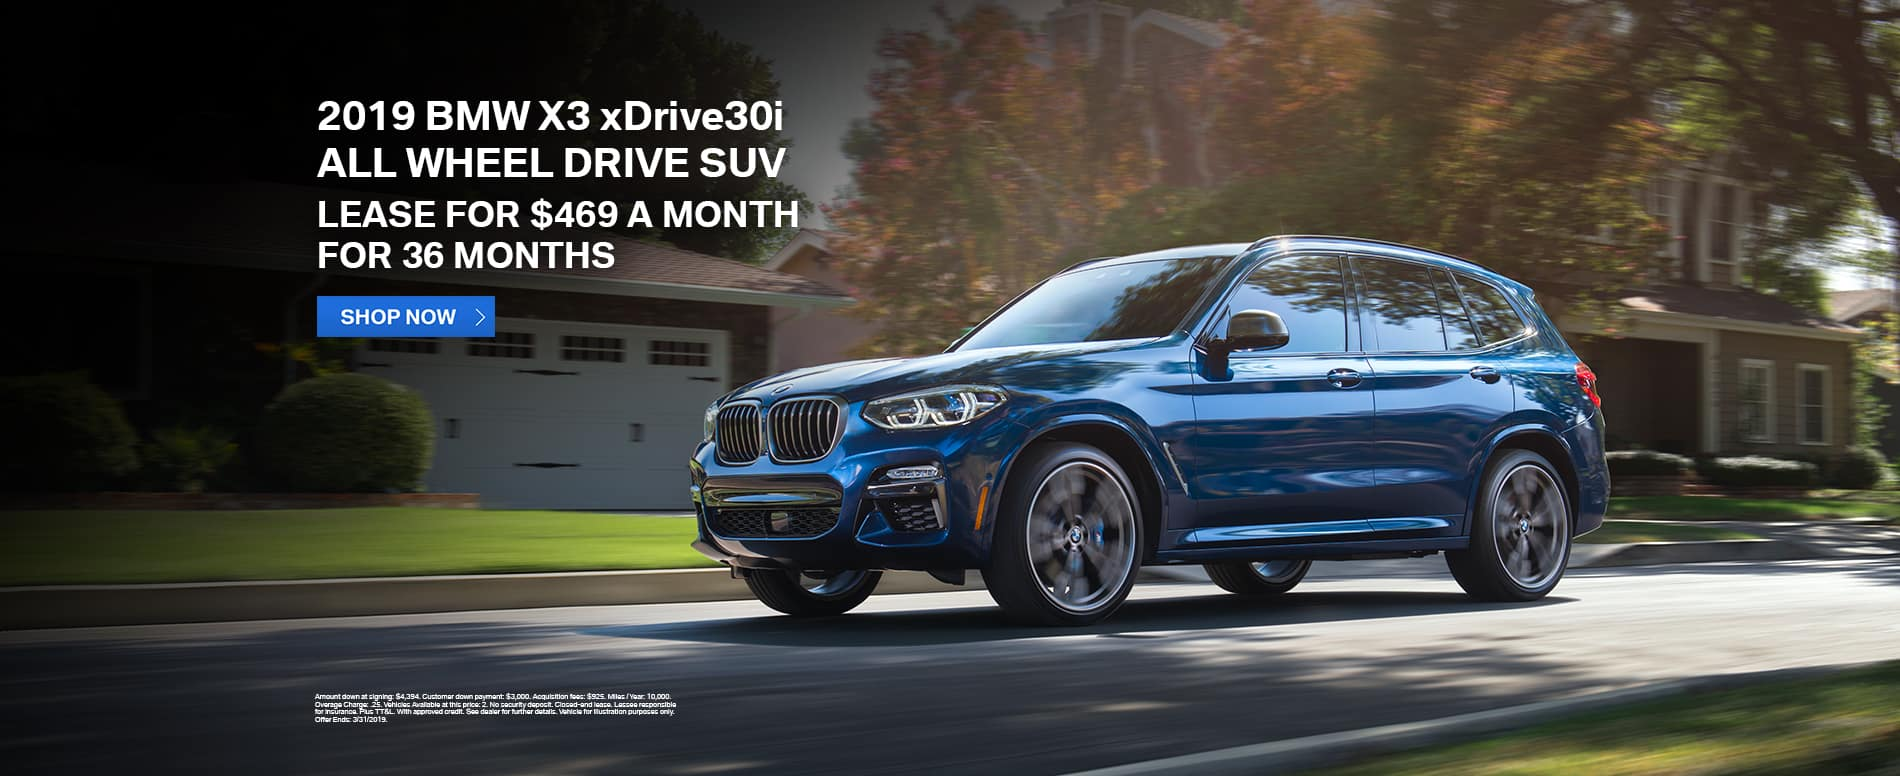 lease-2019-bmw-x3-xdrive30i-awd-suv-tulsa